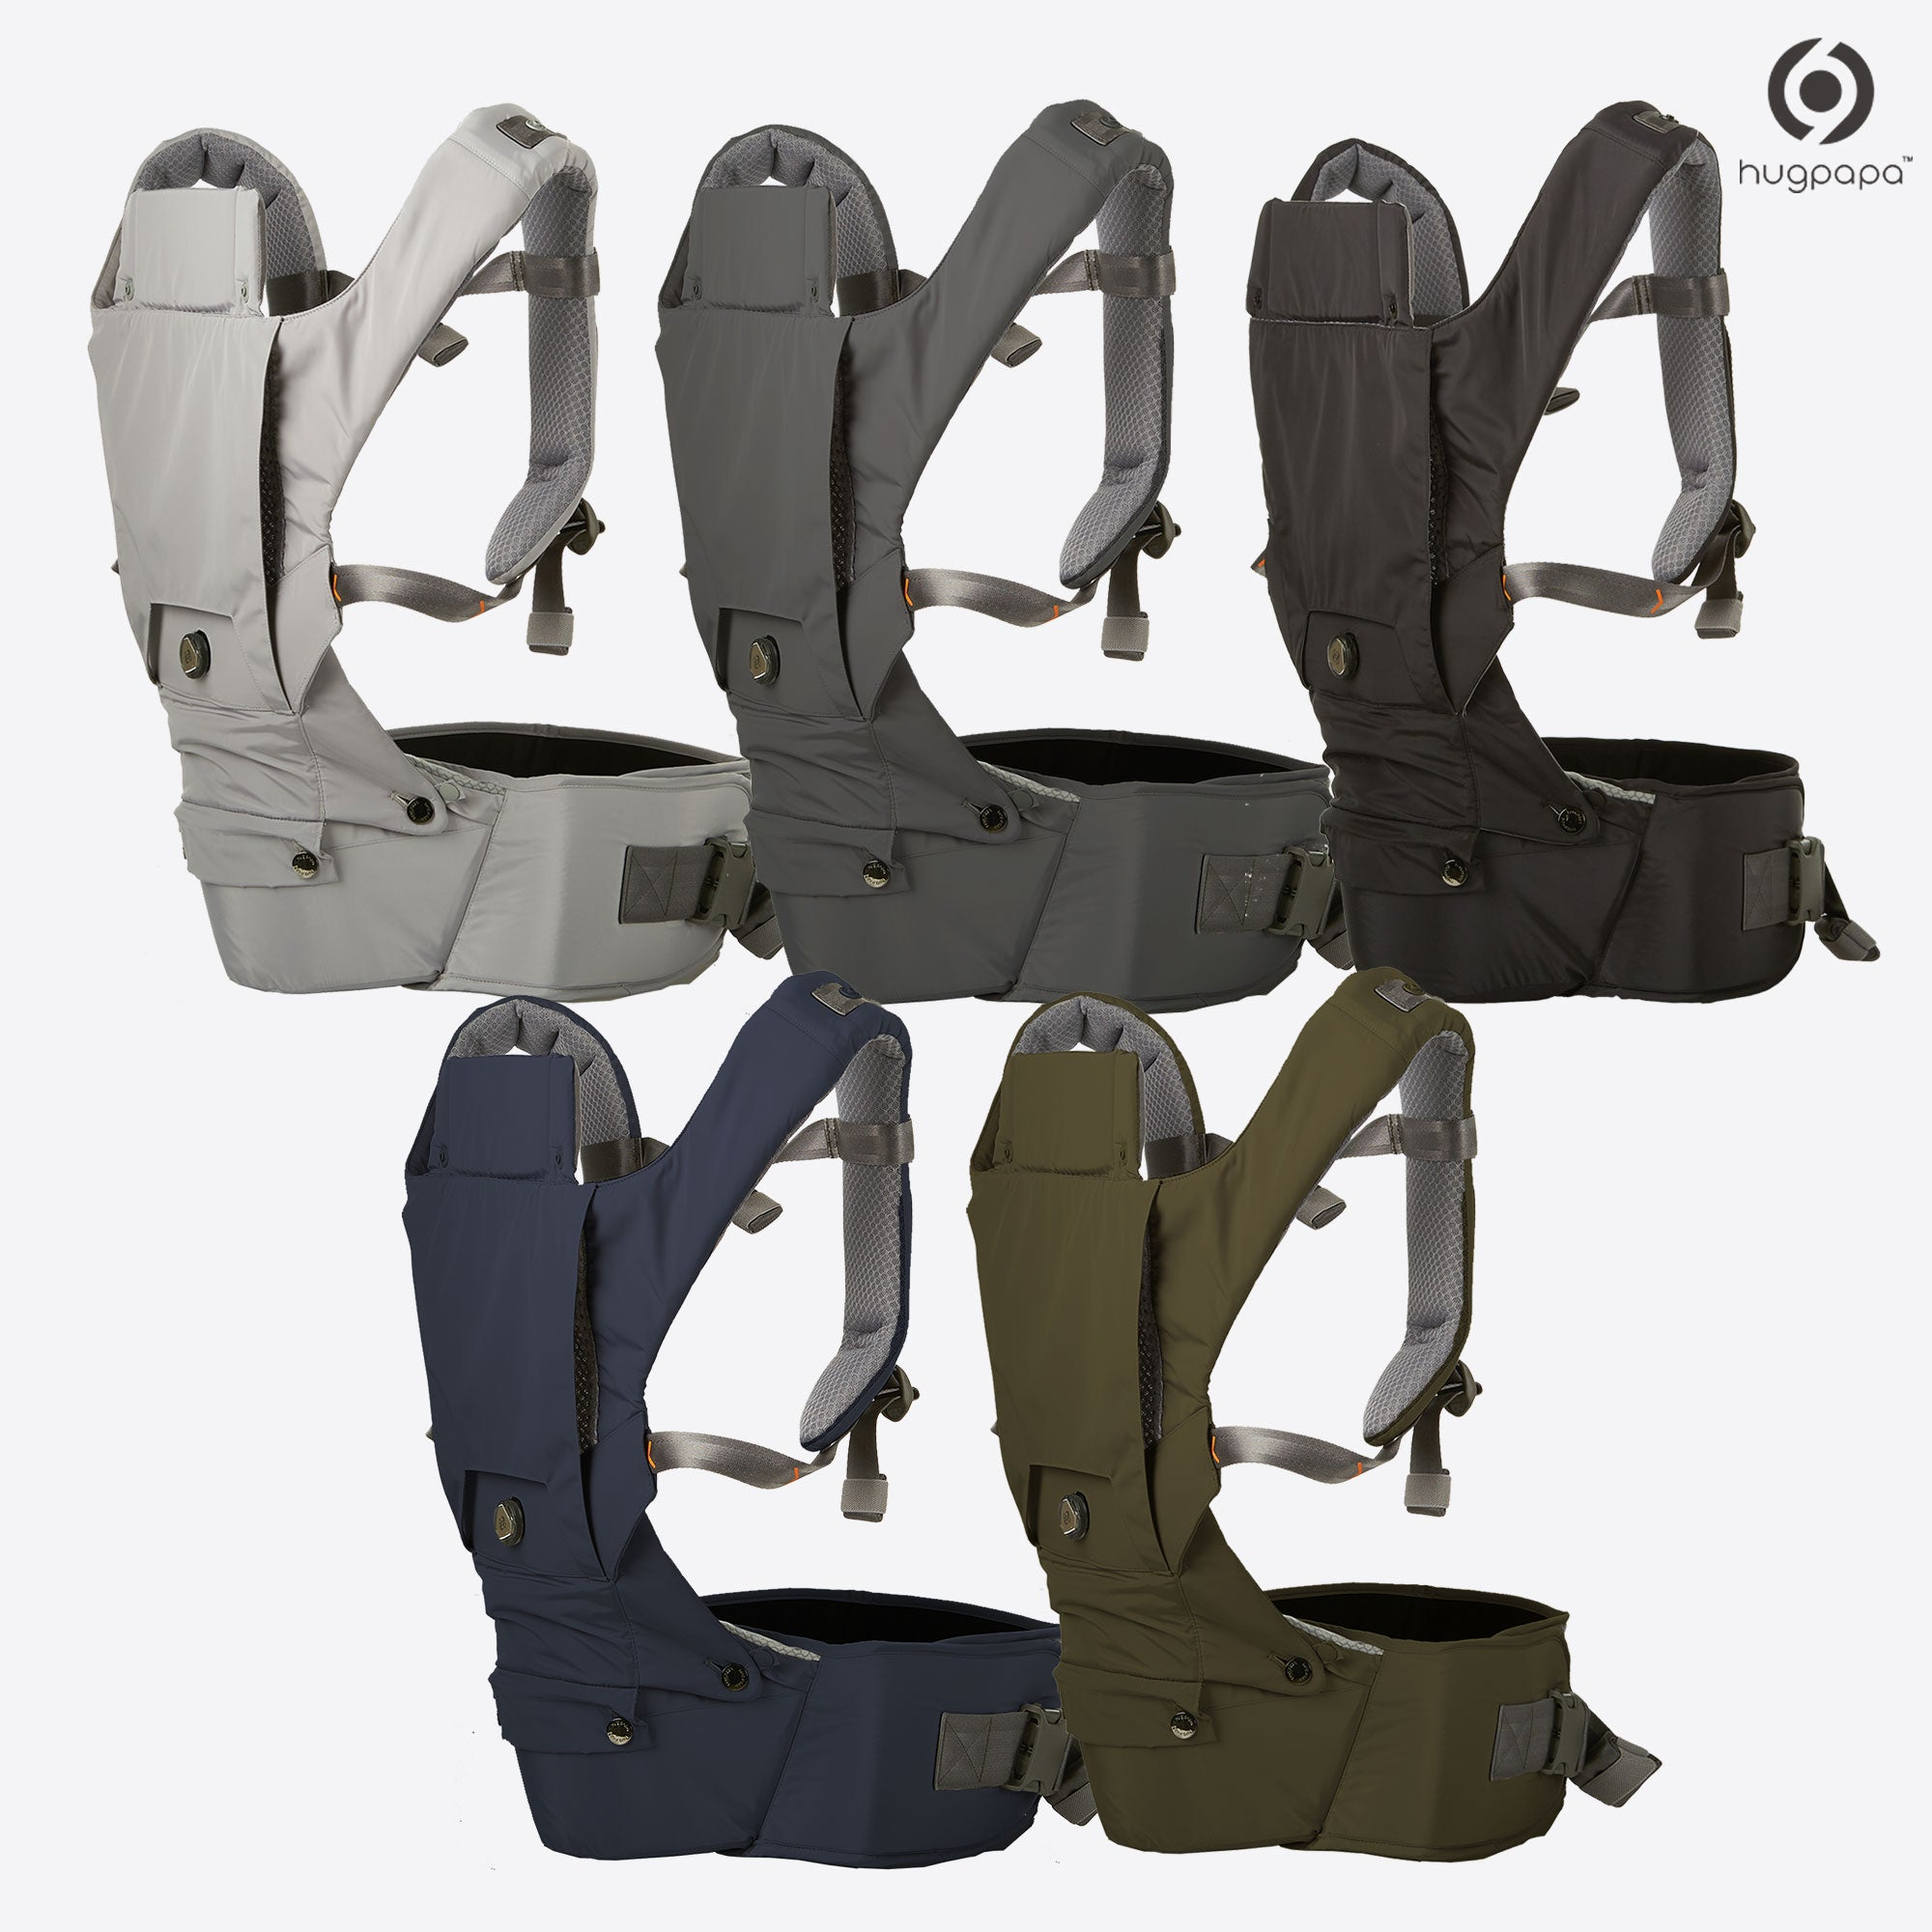 2019 New Edition Hugpapa Dial Fit 3 In 1 Hip Seat Baby Carrier 5